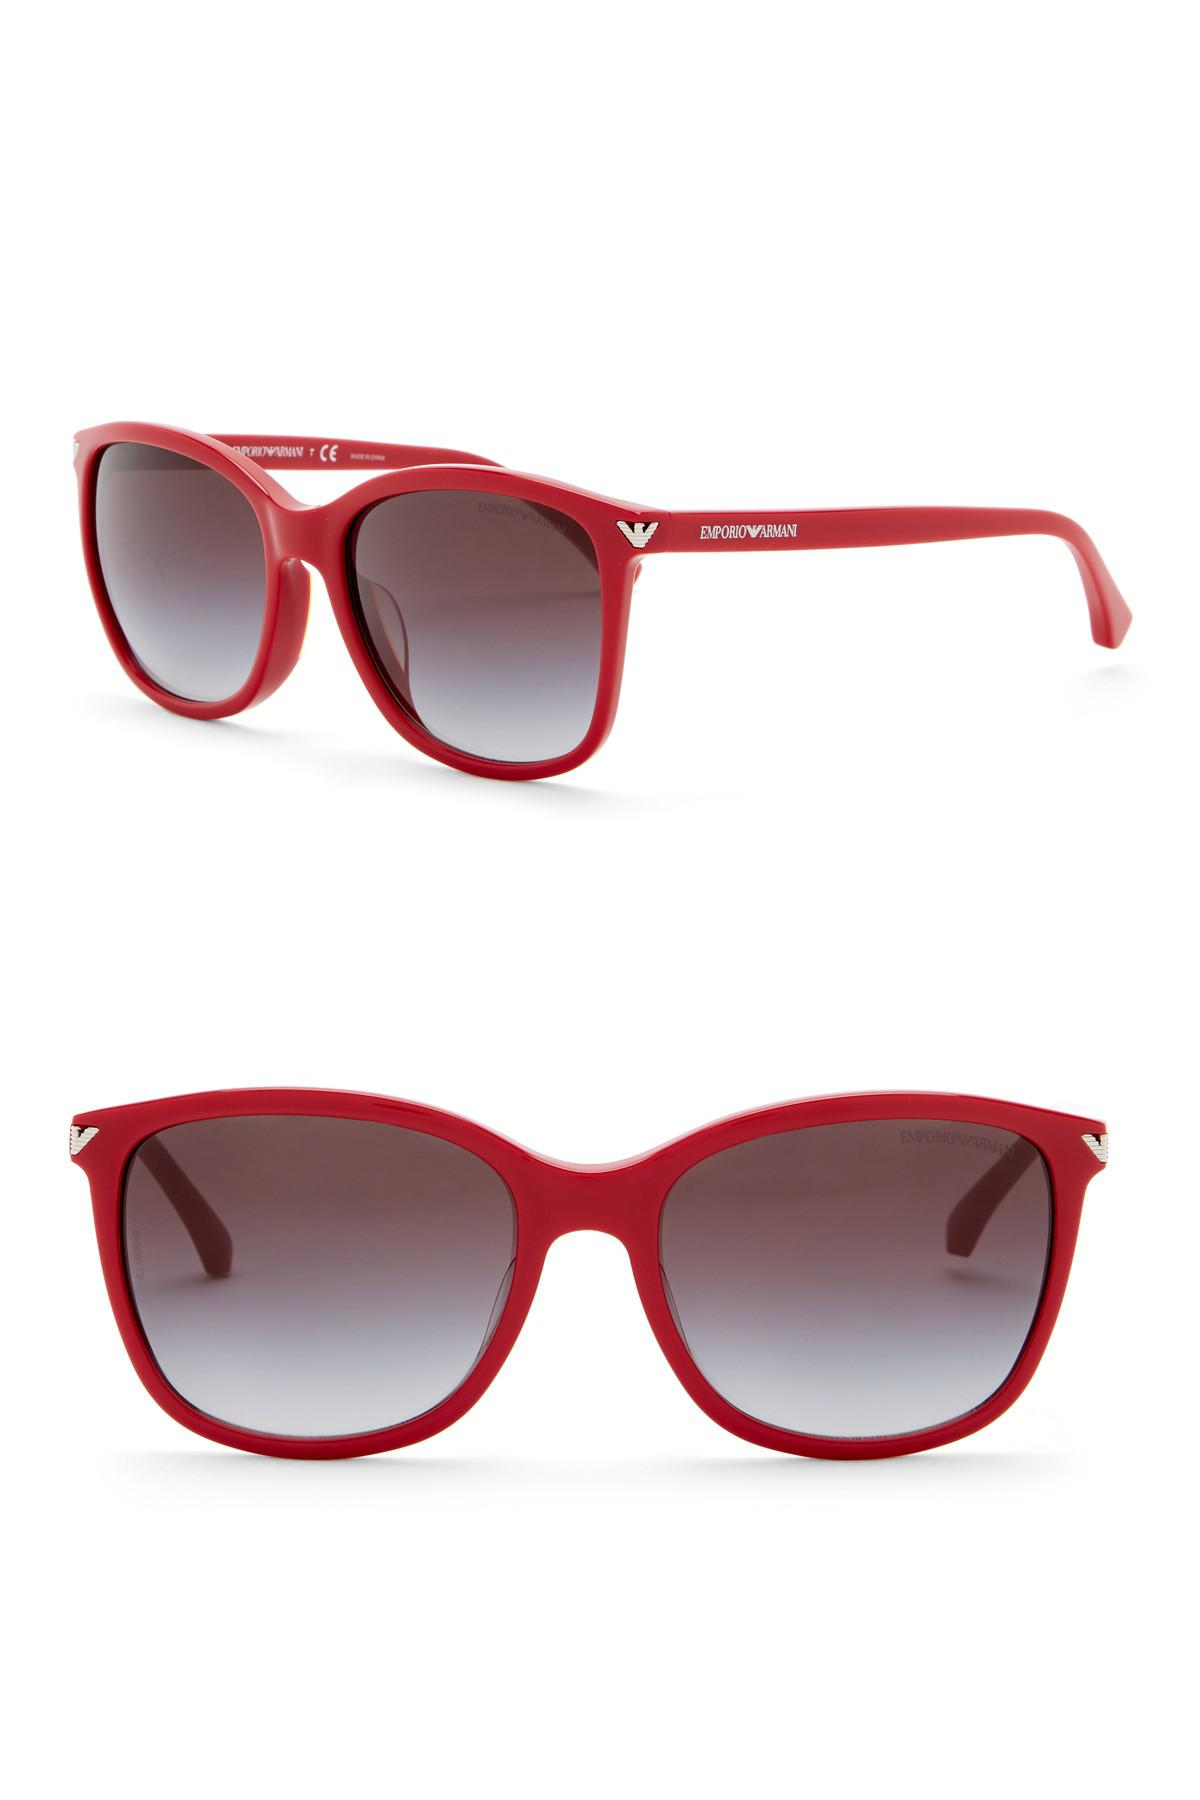 5d555d23a8e6 Lyst - Emporio Armani 56mm Oversized Acetate Frame Sunglasses in Red